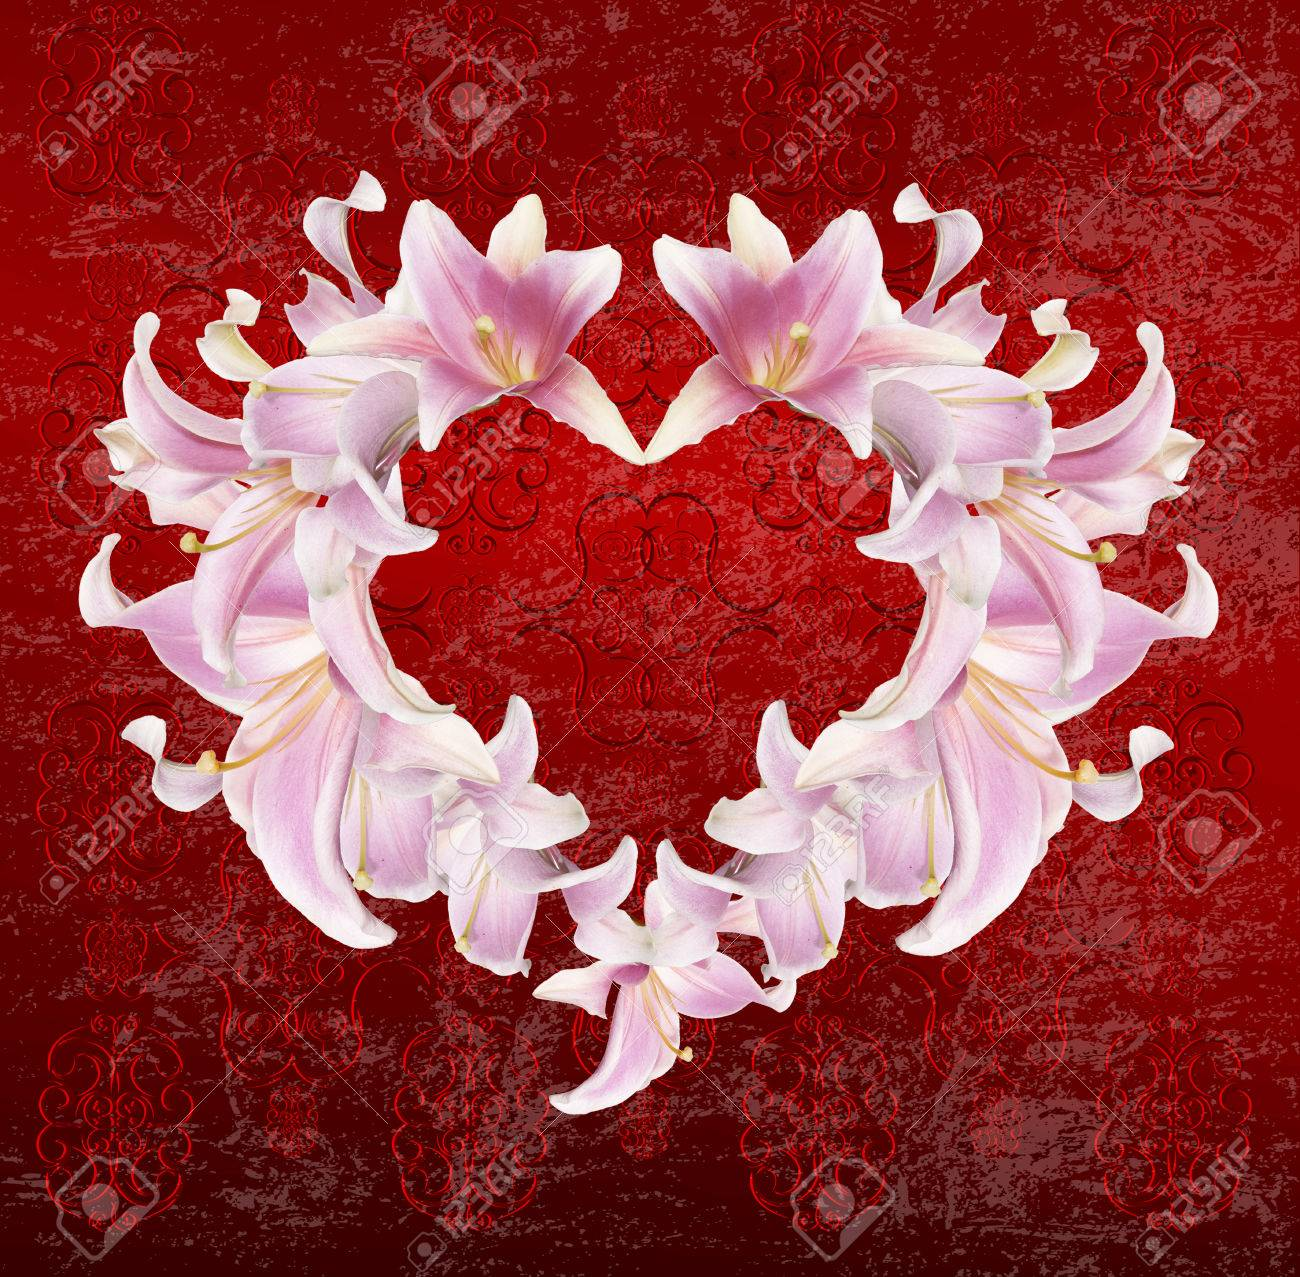 Heart Lily Flower Wedding Holiday Abstract Background Stock Photo